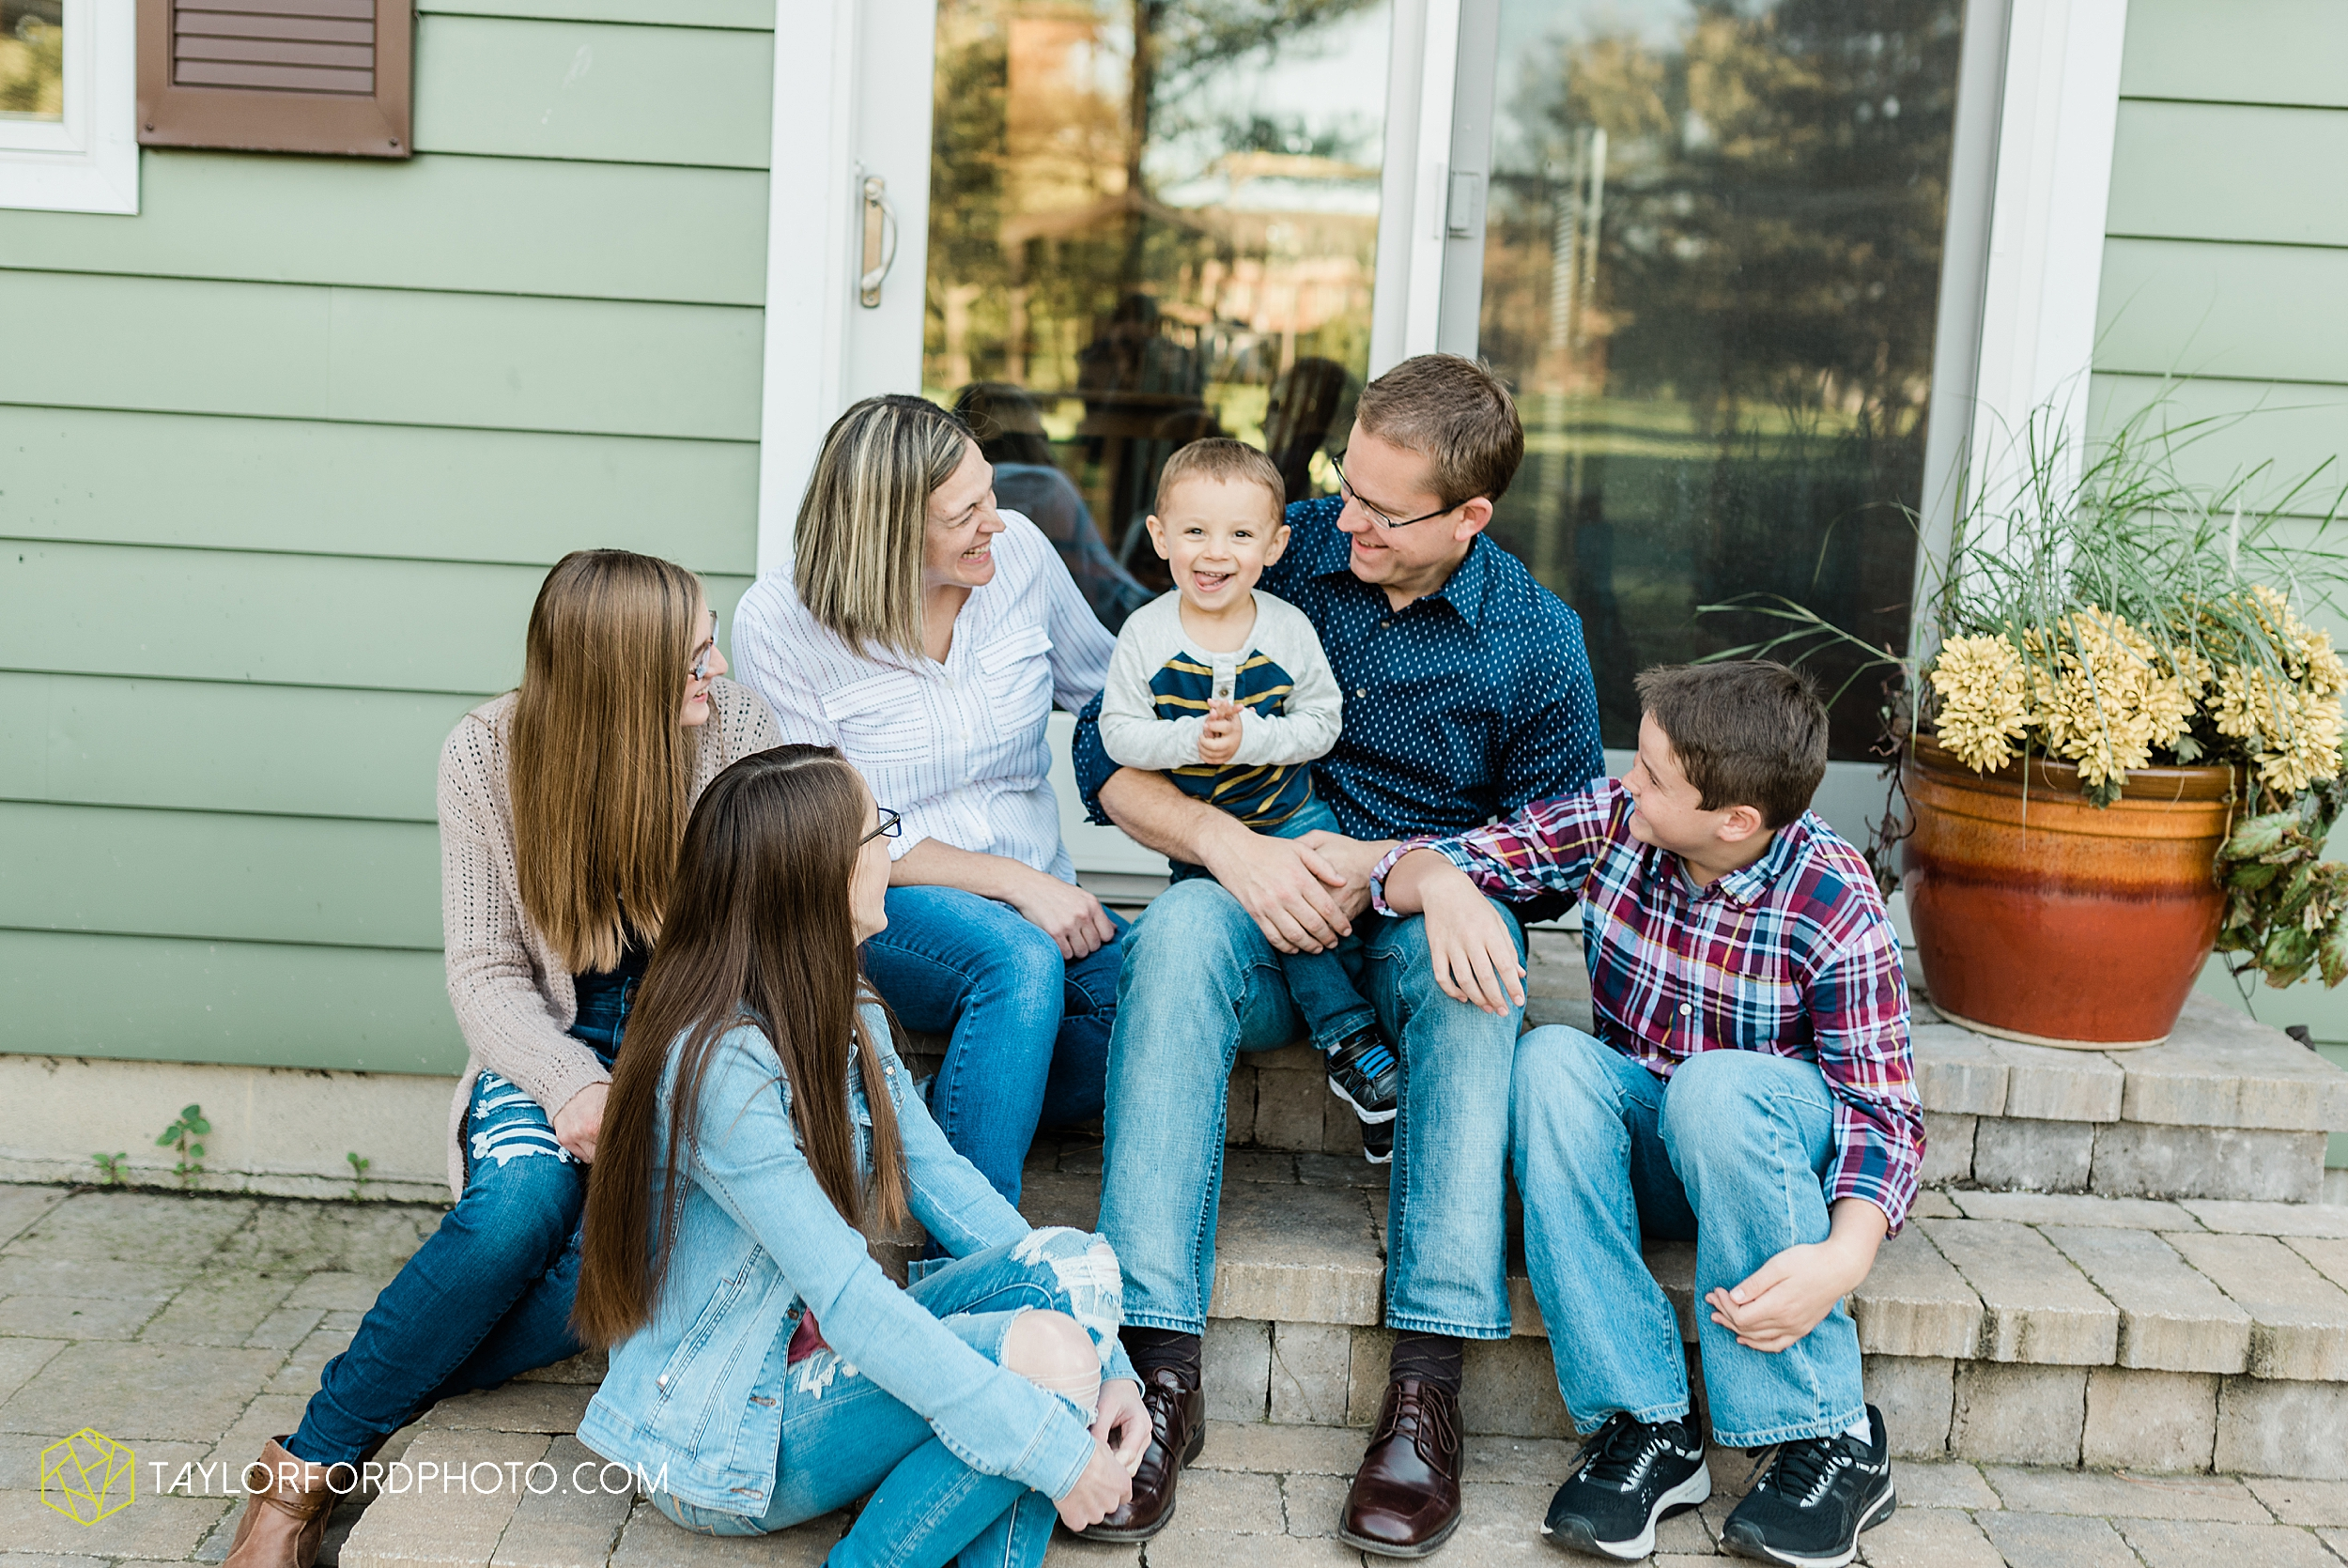 northwest-van-wert-ohio-backyard-at-home-outdoor-natural-light-stollerfamily-photographer-taylor-ford-photography_1230.jpg